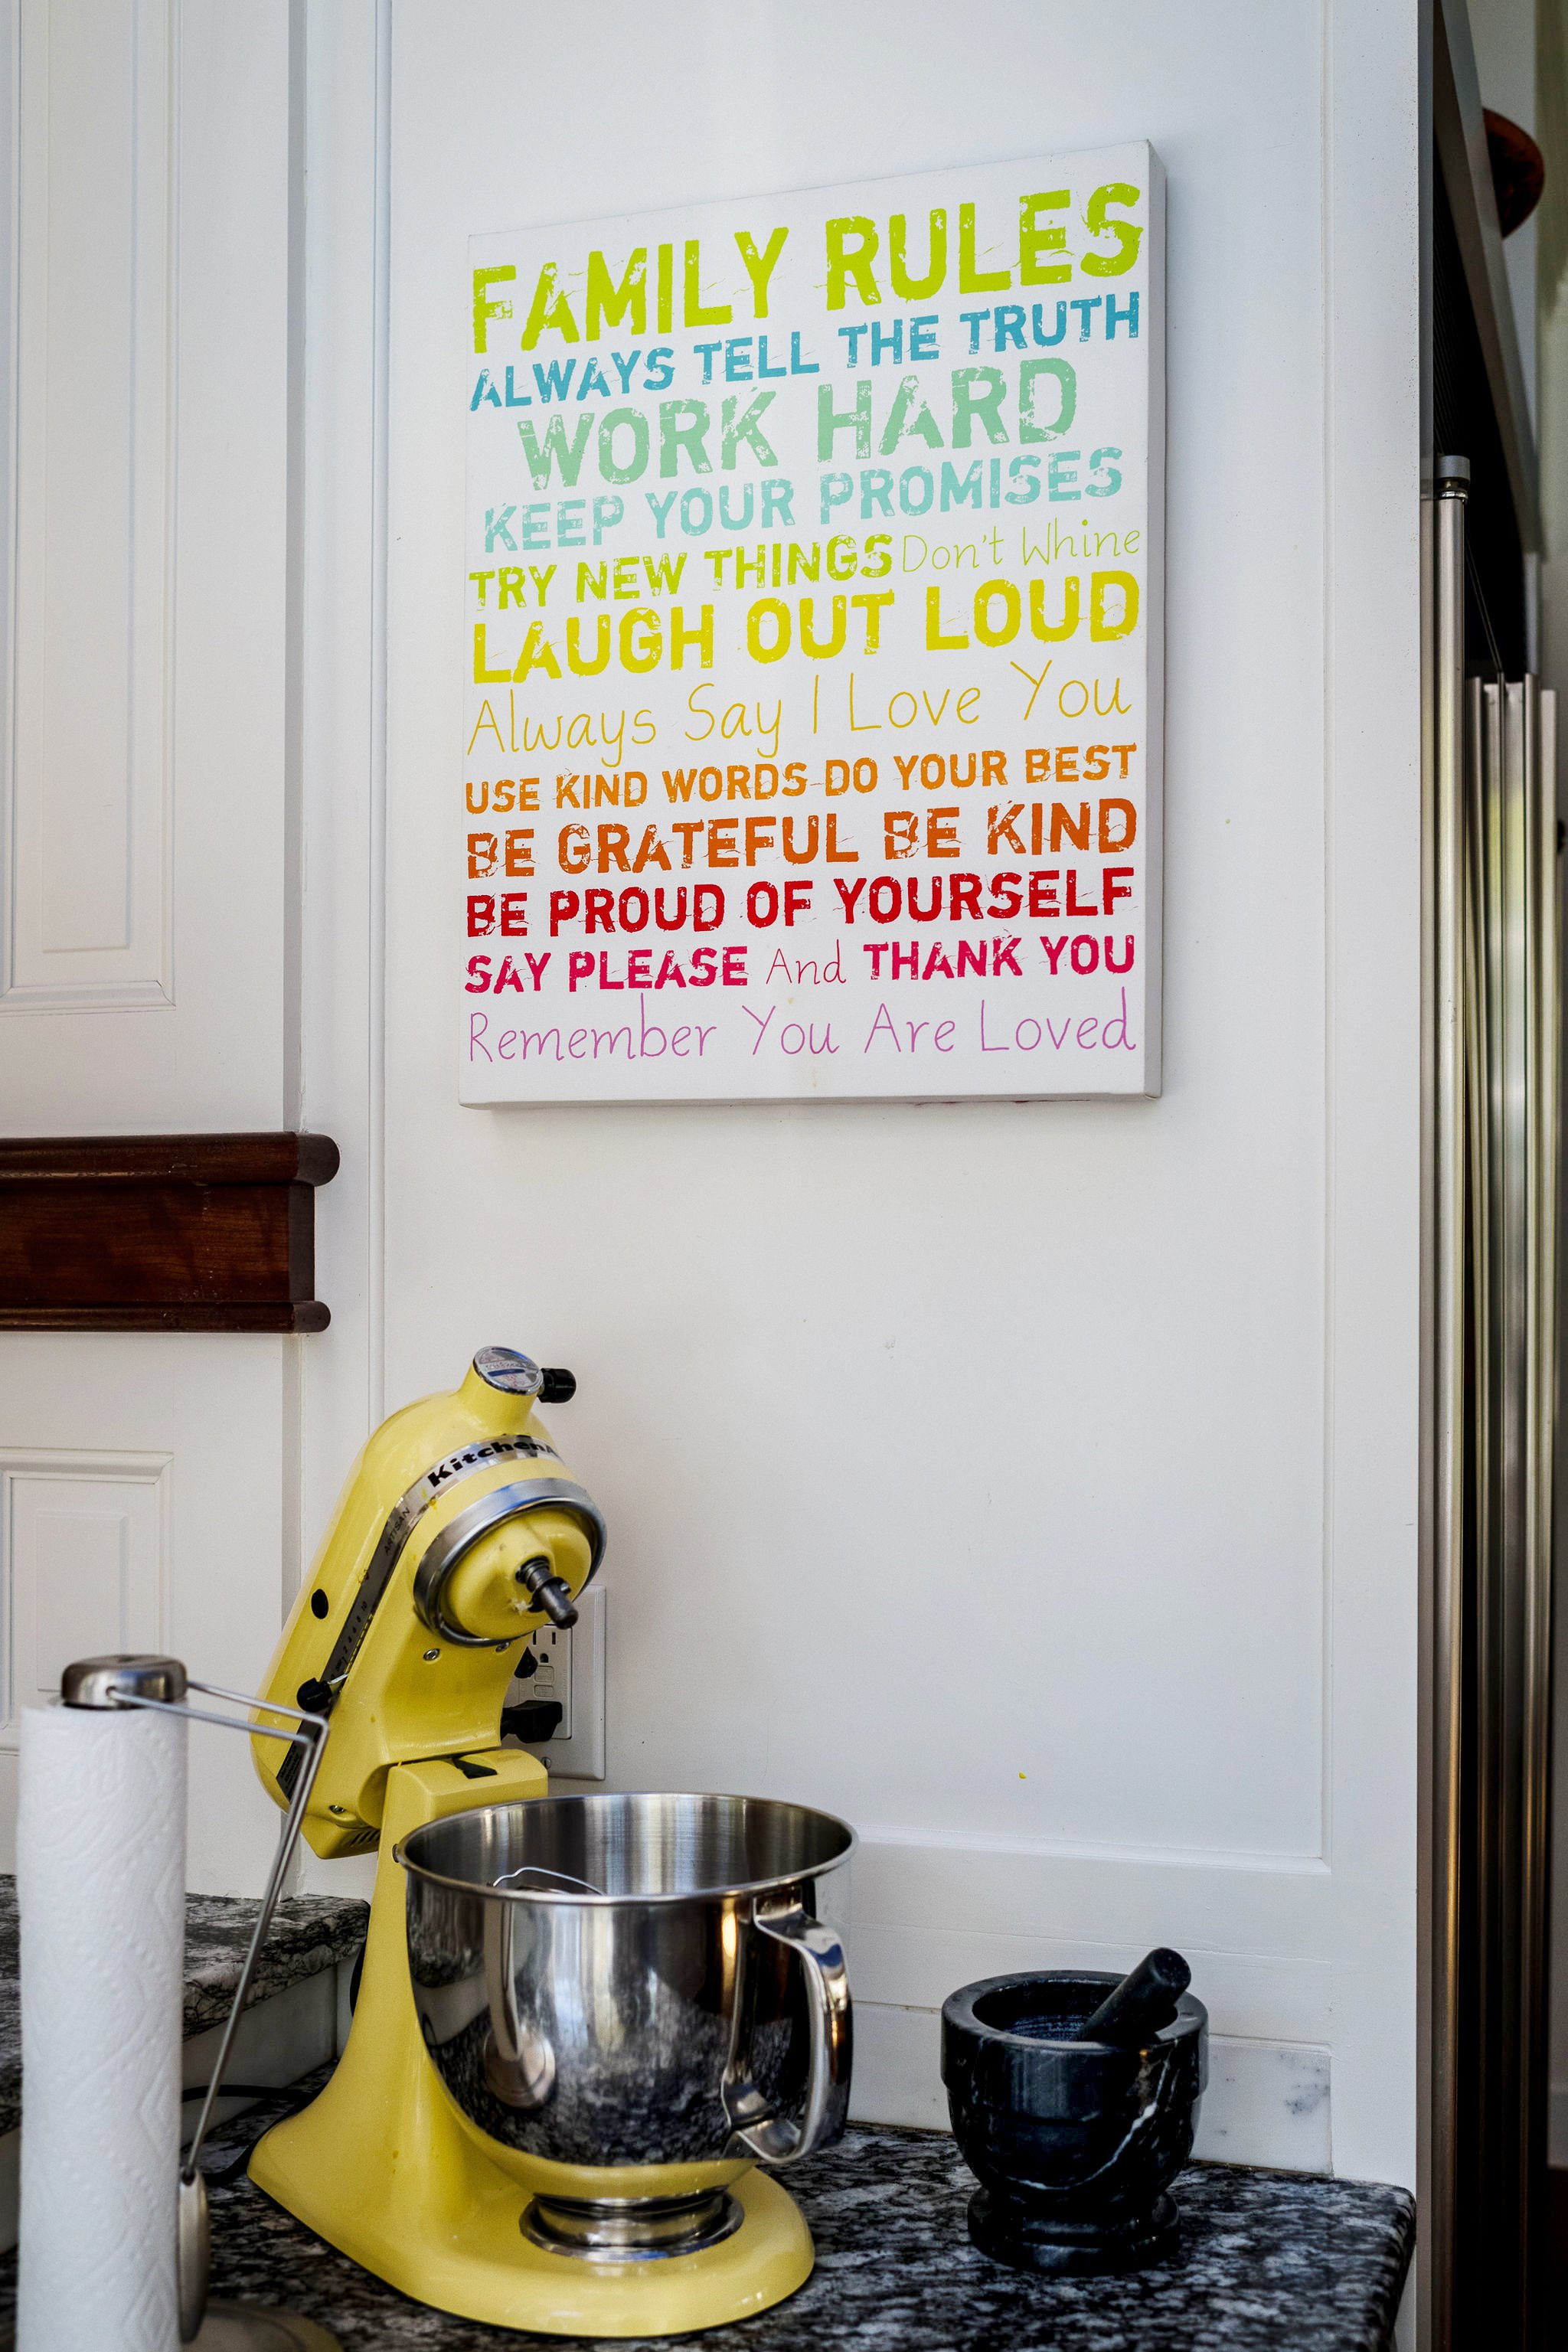 Family rules poster in home